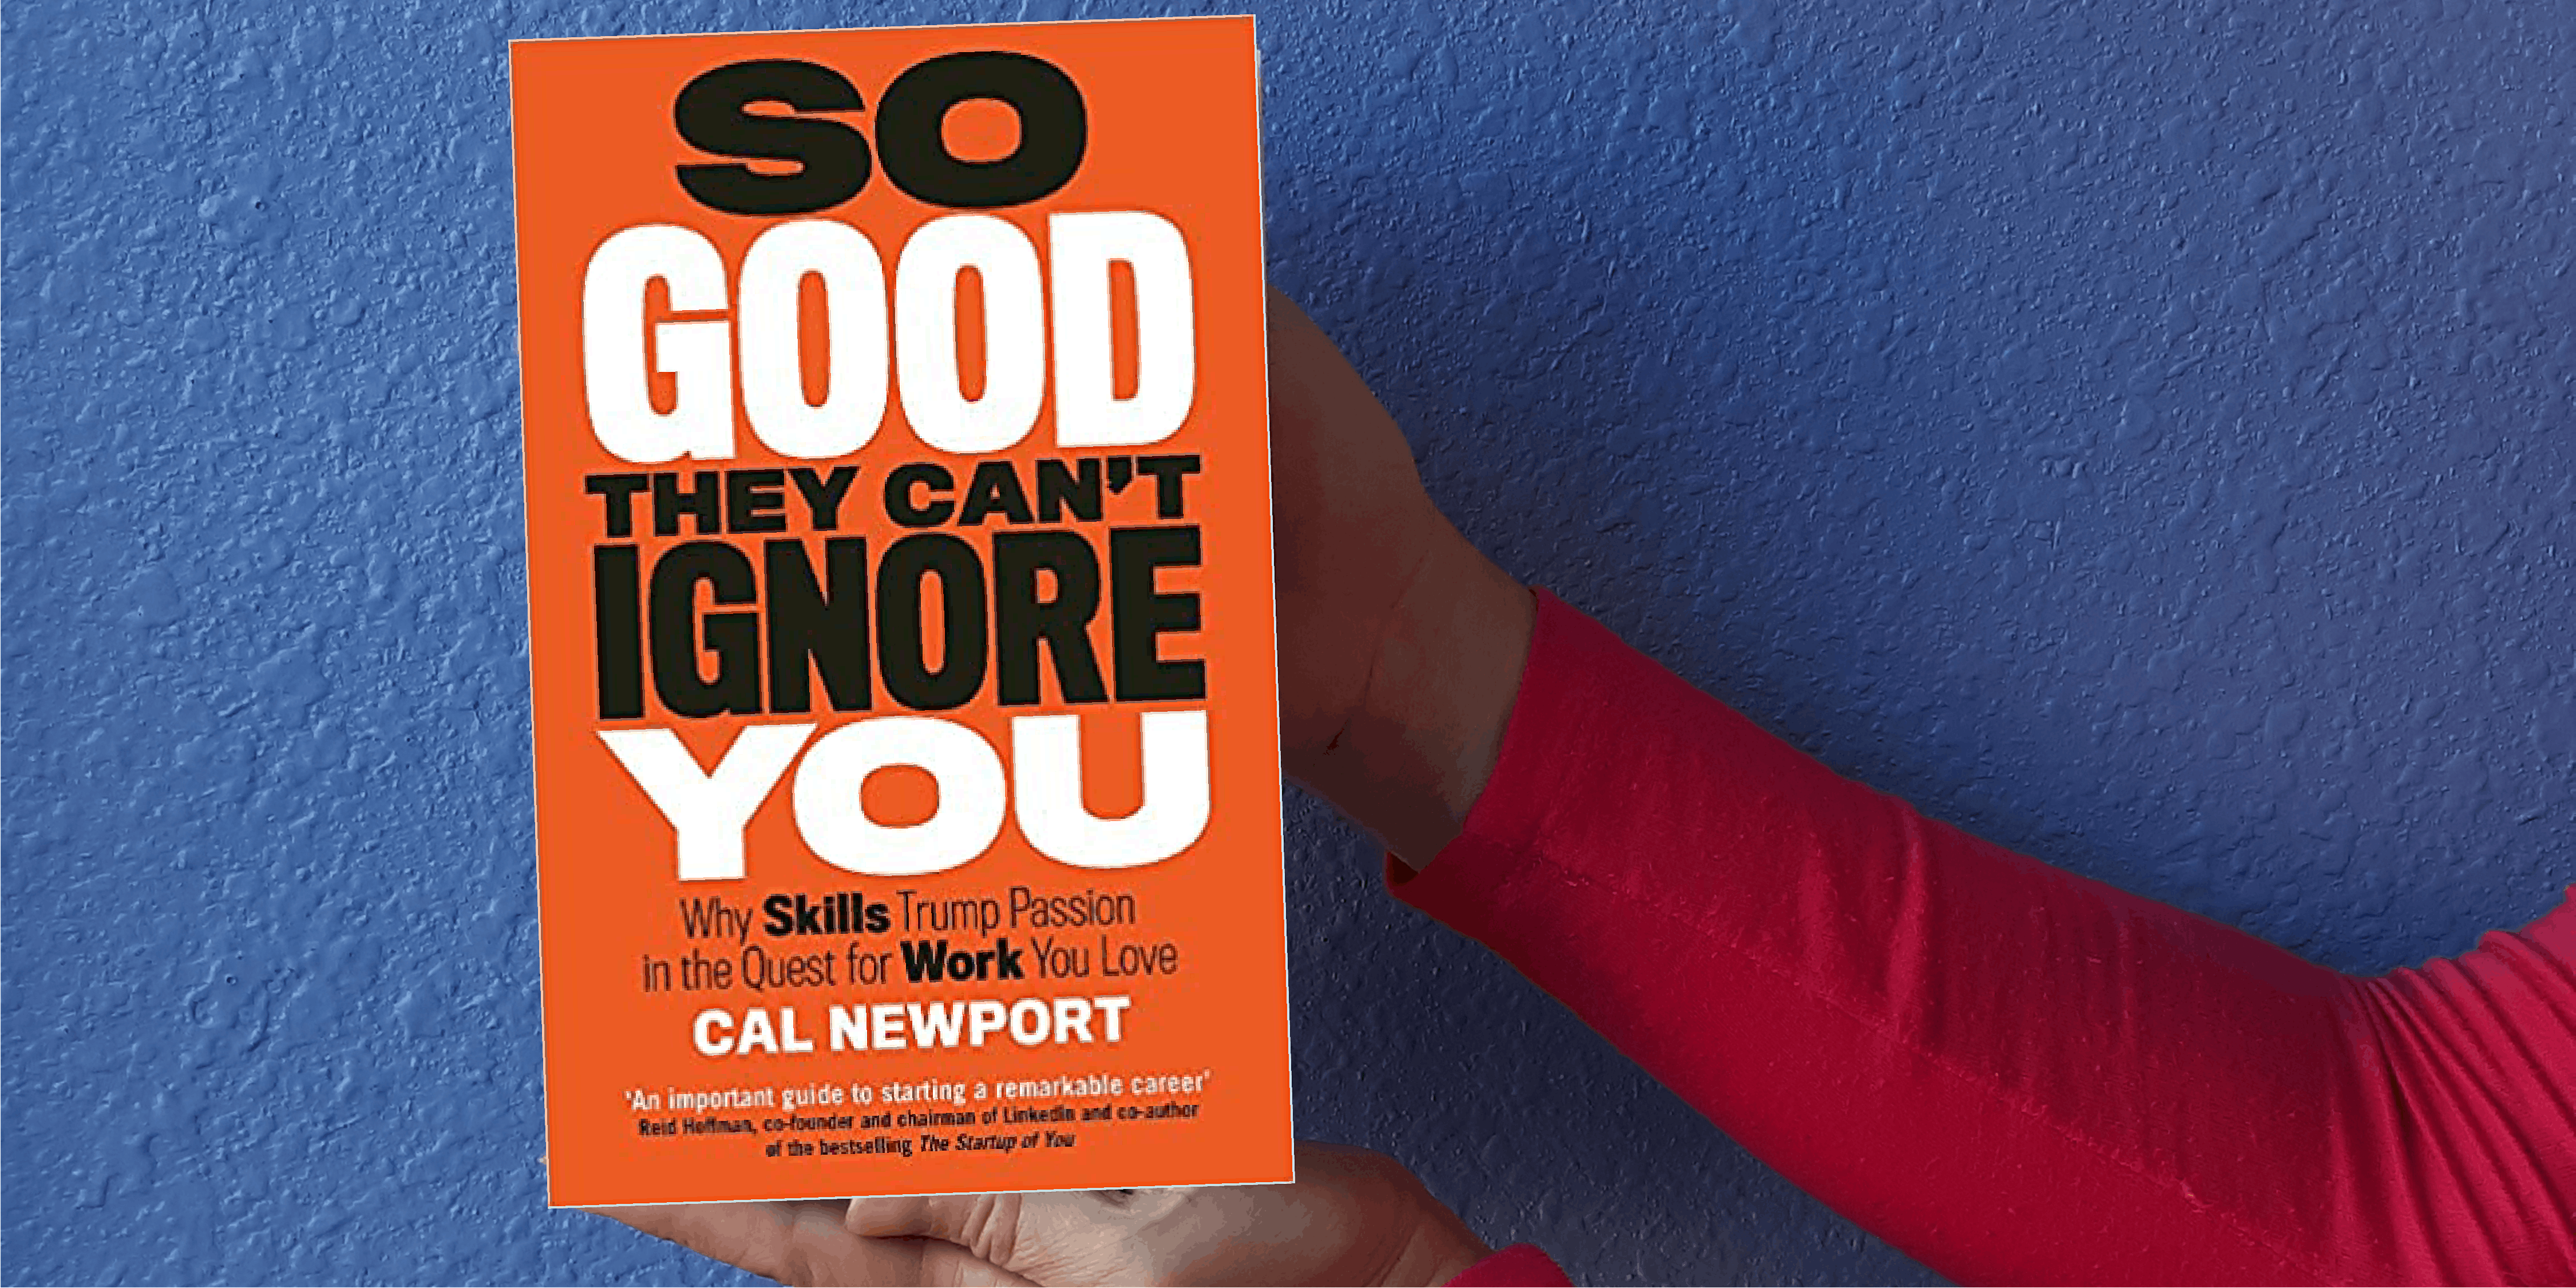 Roundtable Book Club Discussion: So Good They Can't Ignore You!